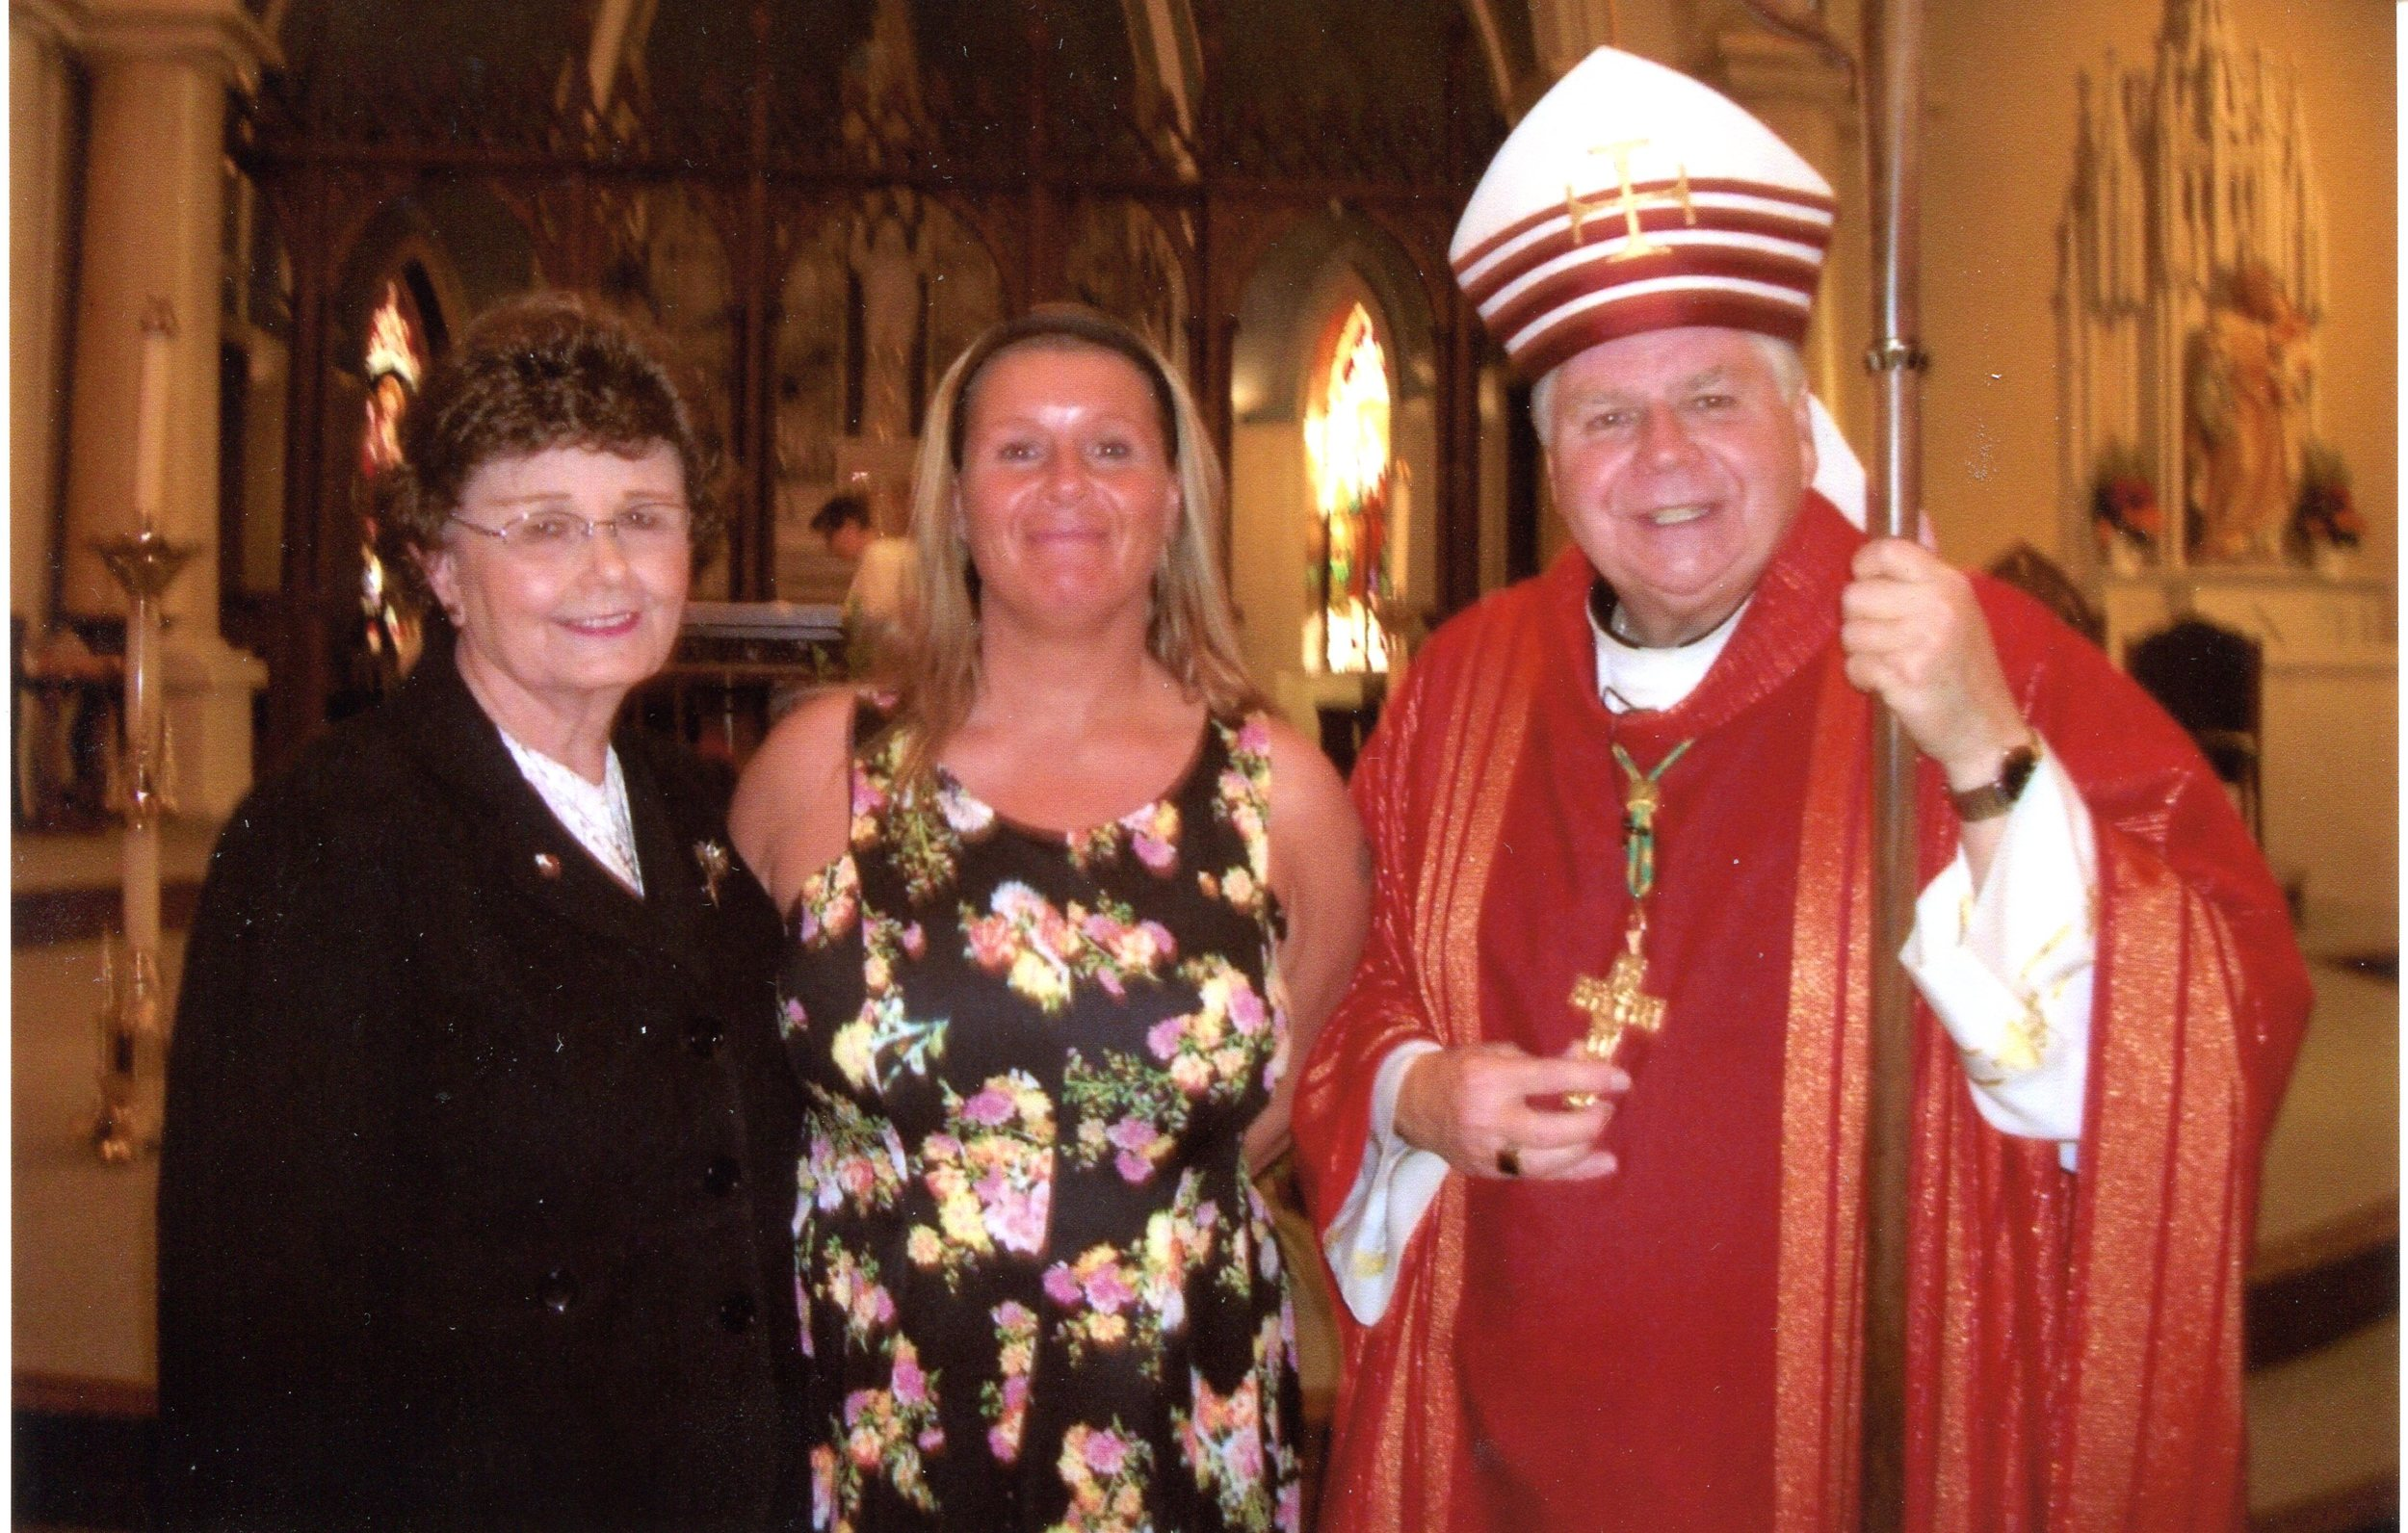 Newly Confirmed Person (center) with Bishop Bradly and Her Sponsor 2015